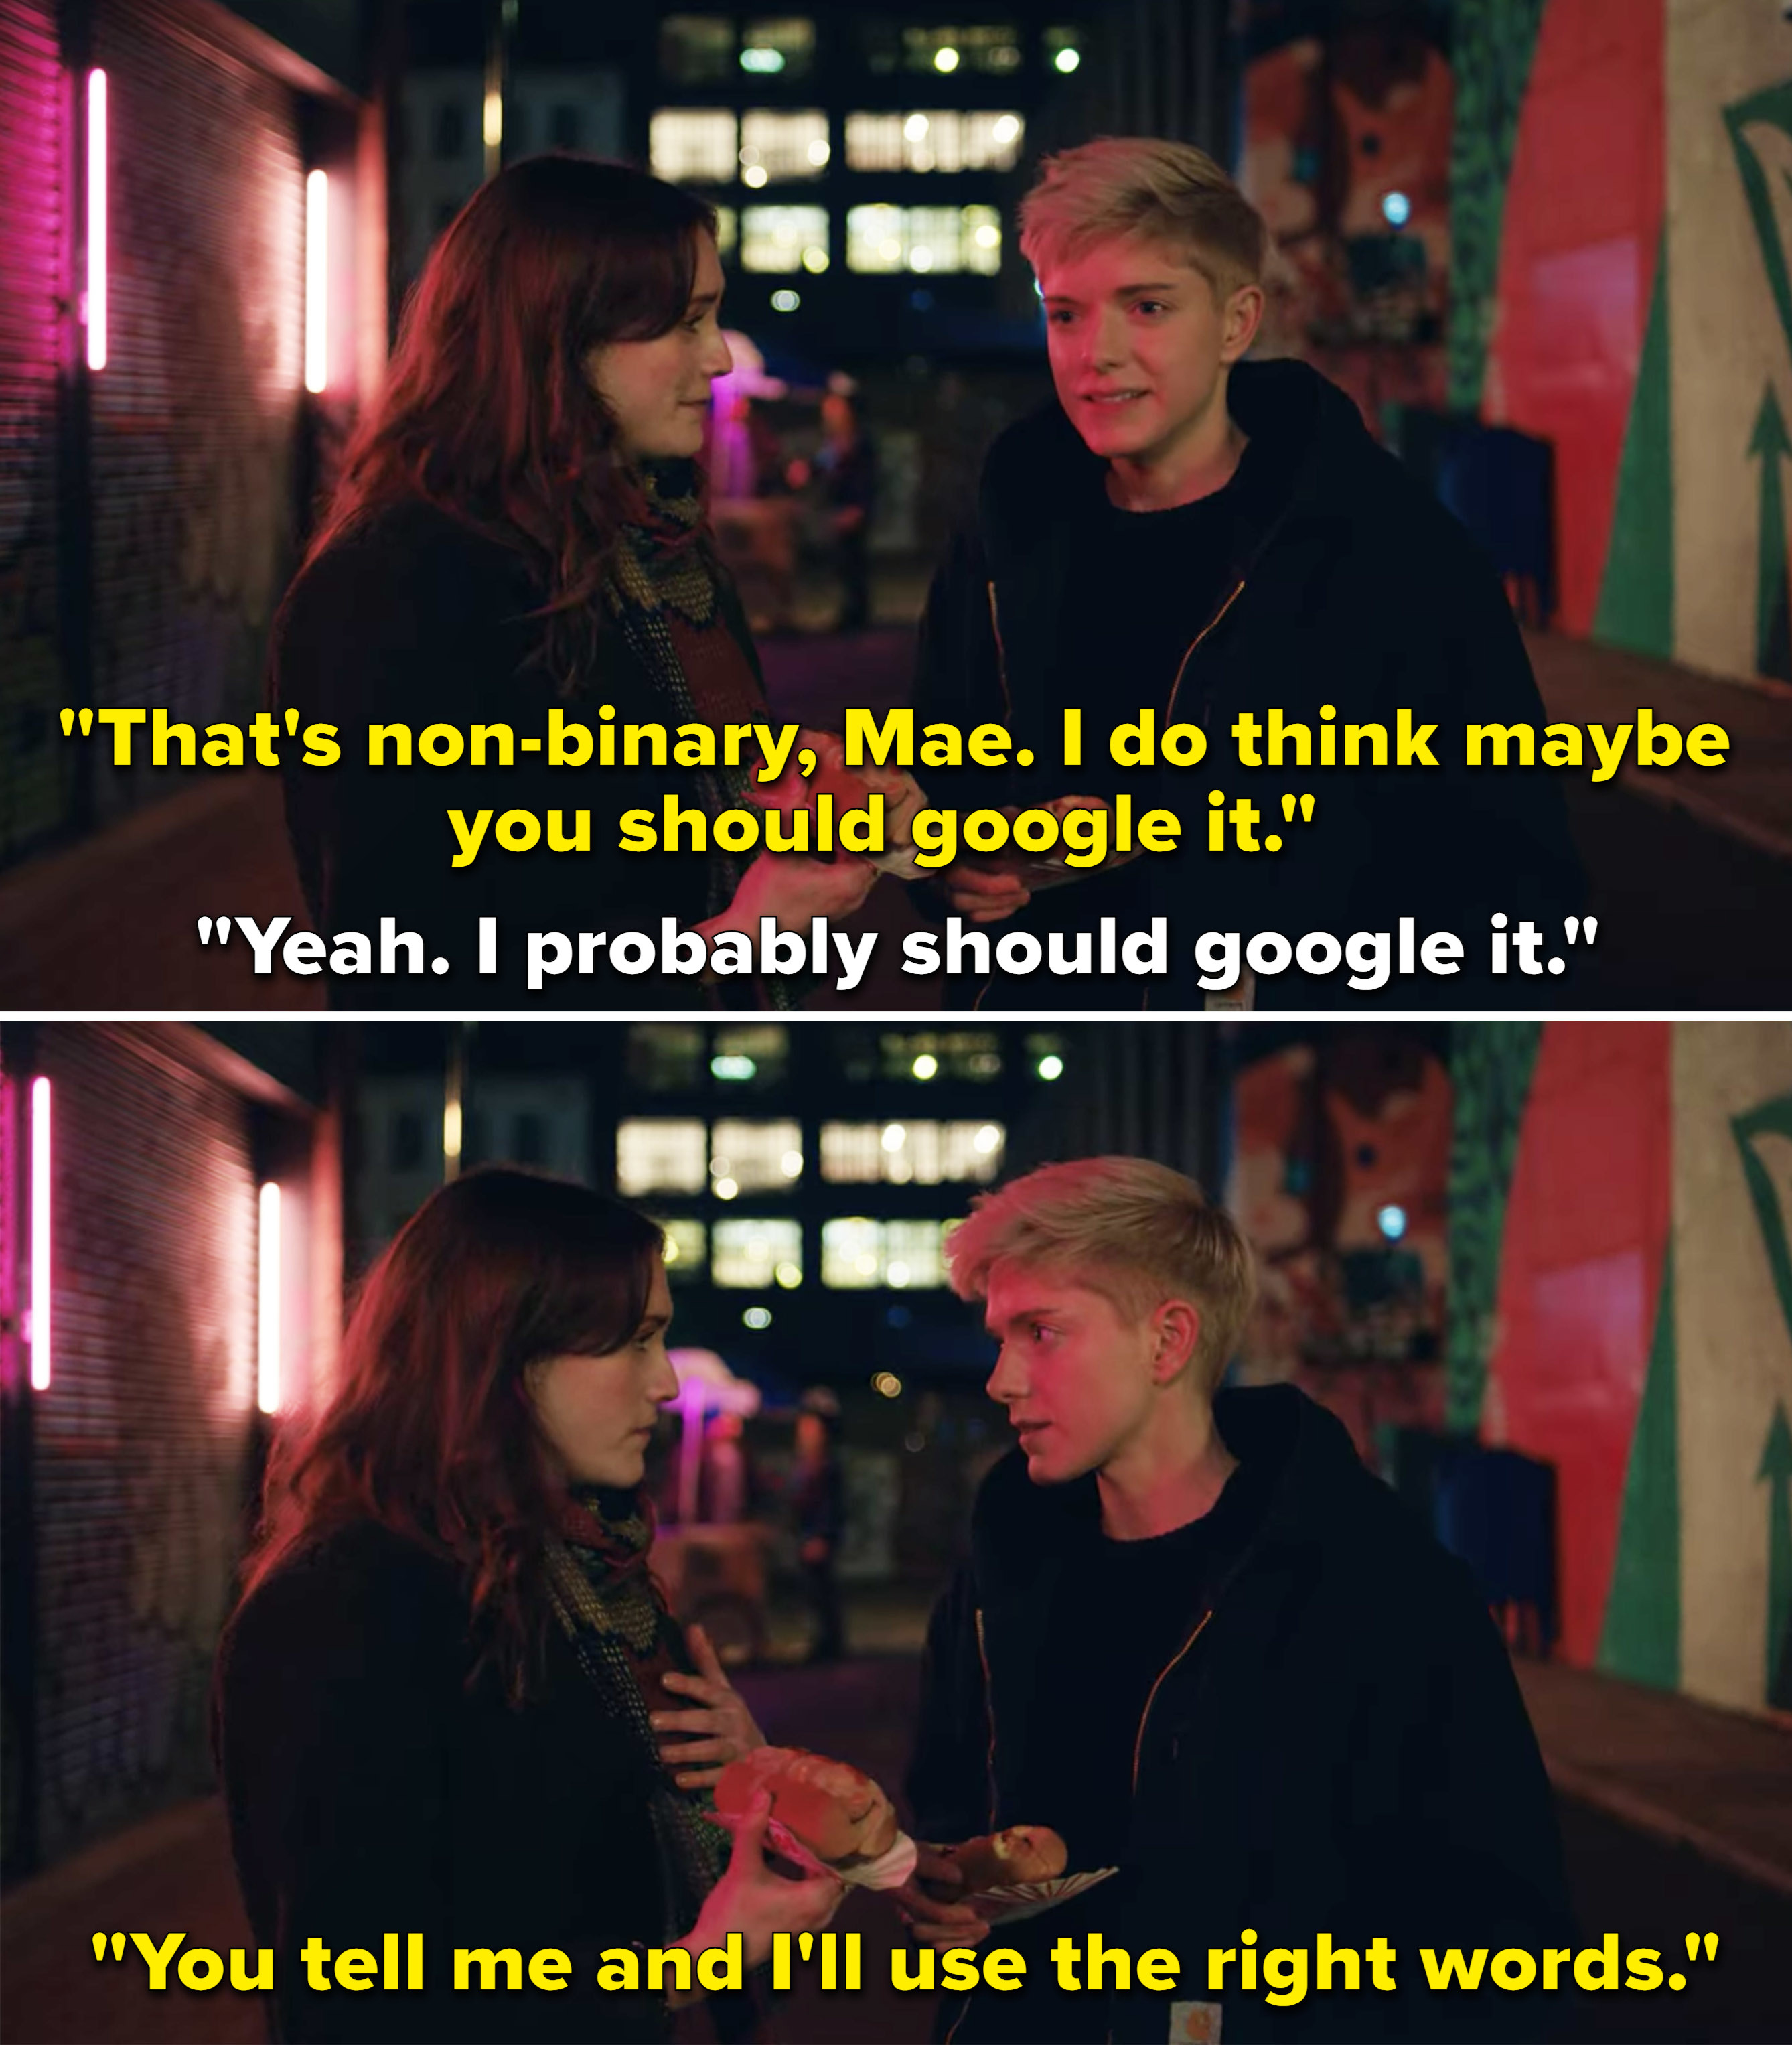 George telling Mae that whatever labels they want to use, she's good with